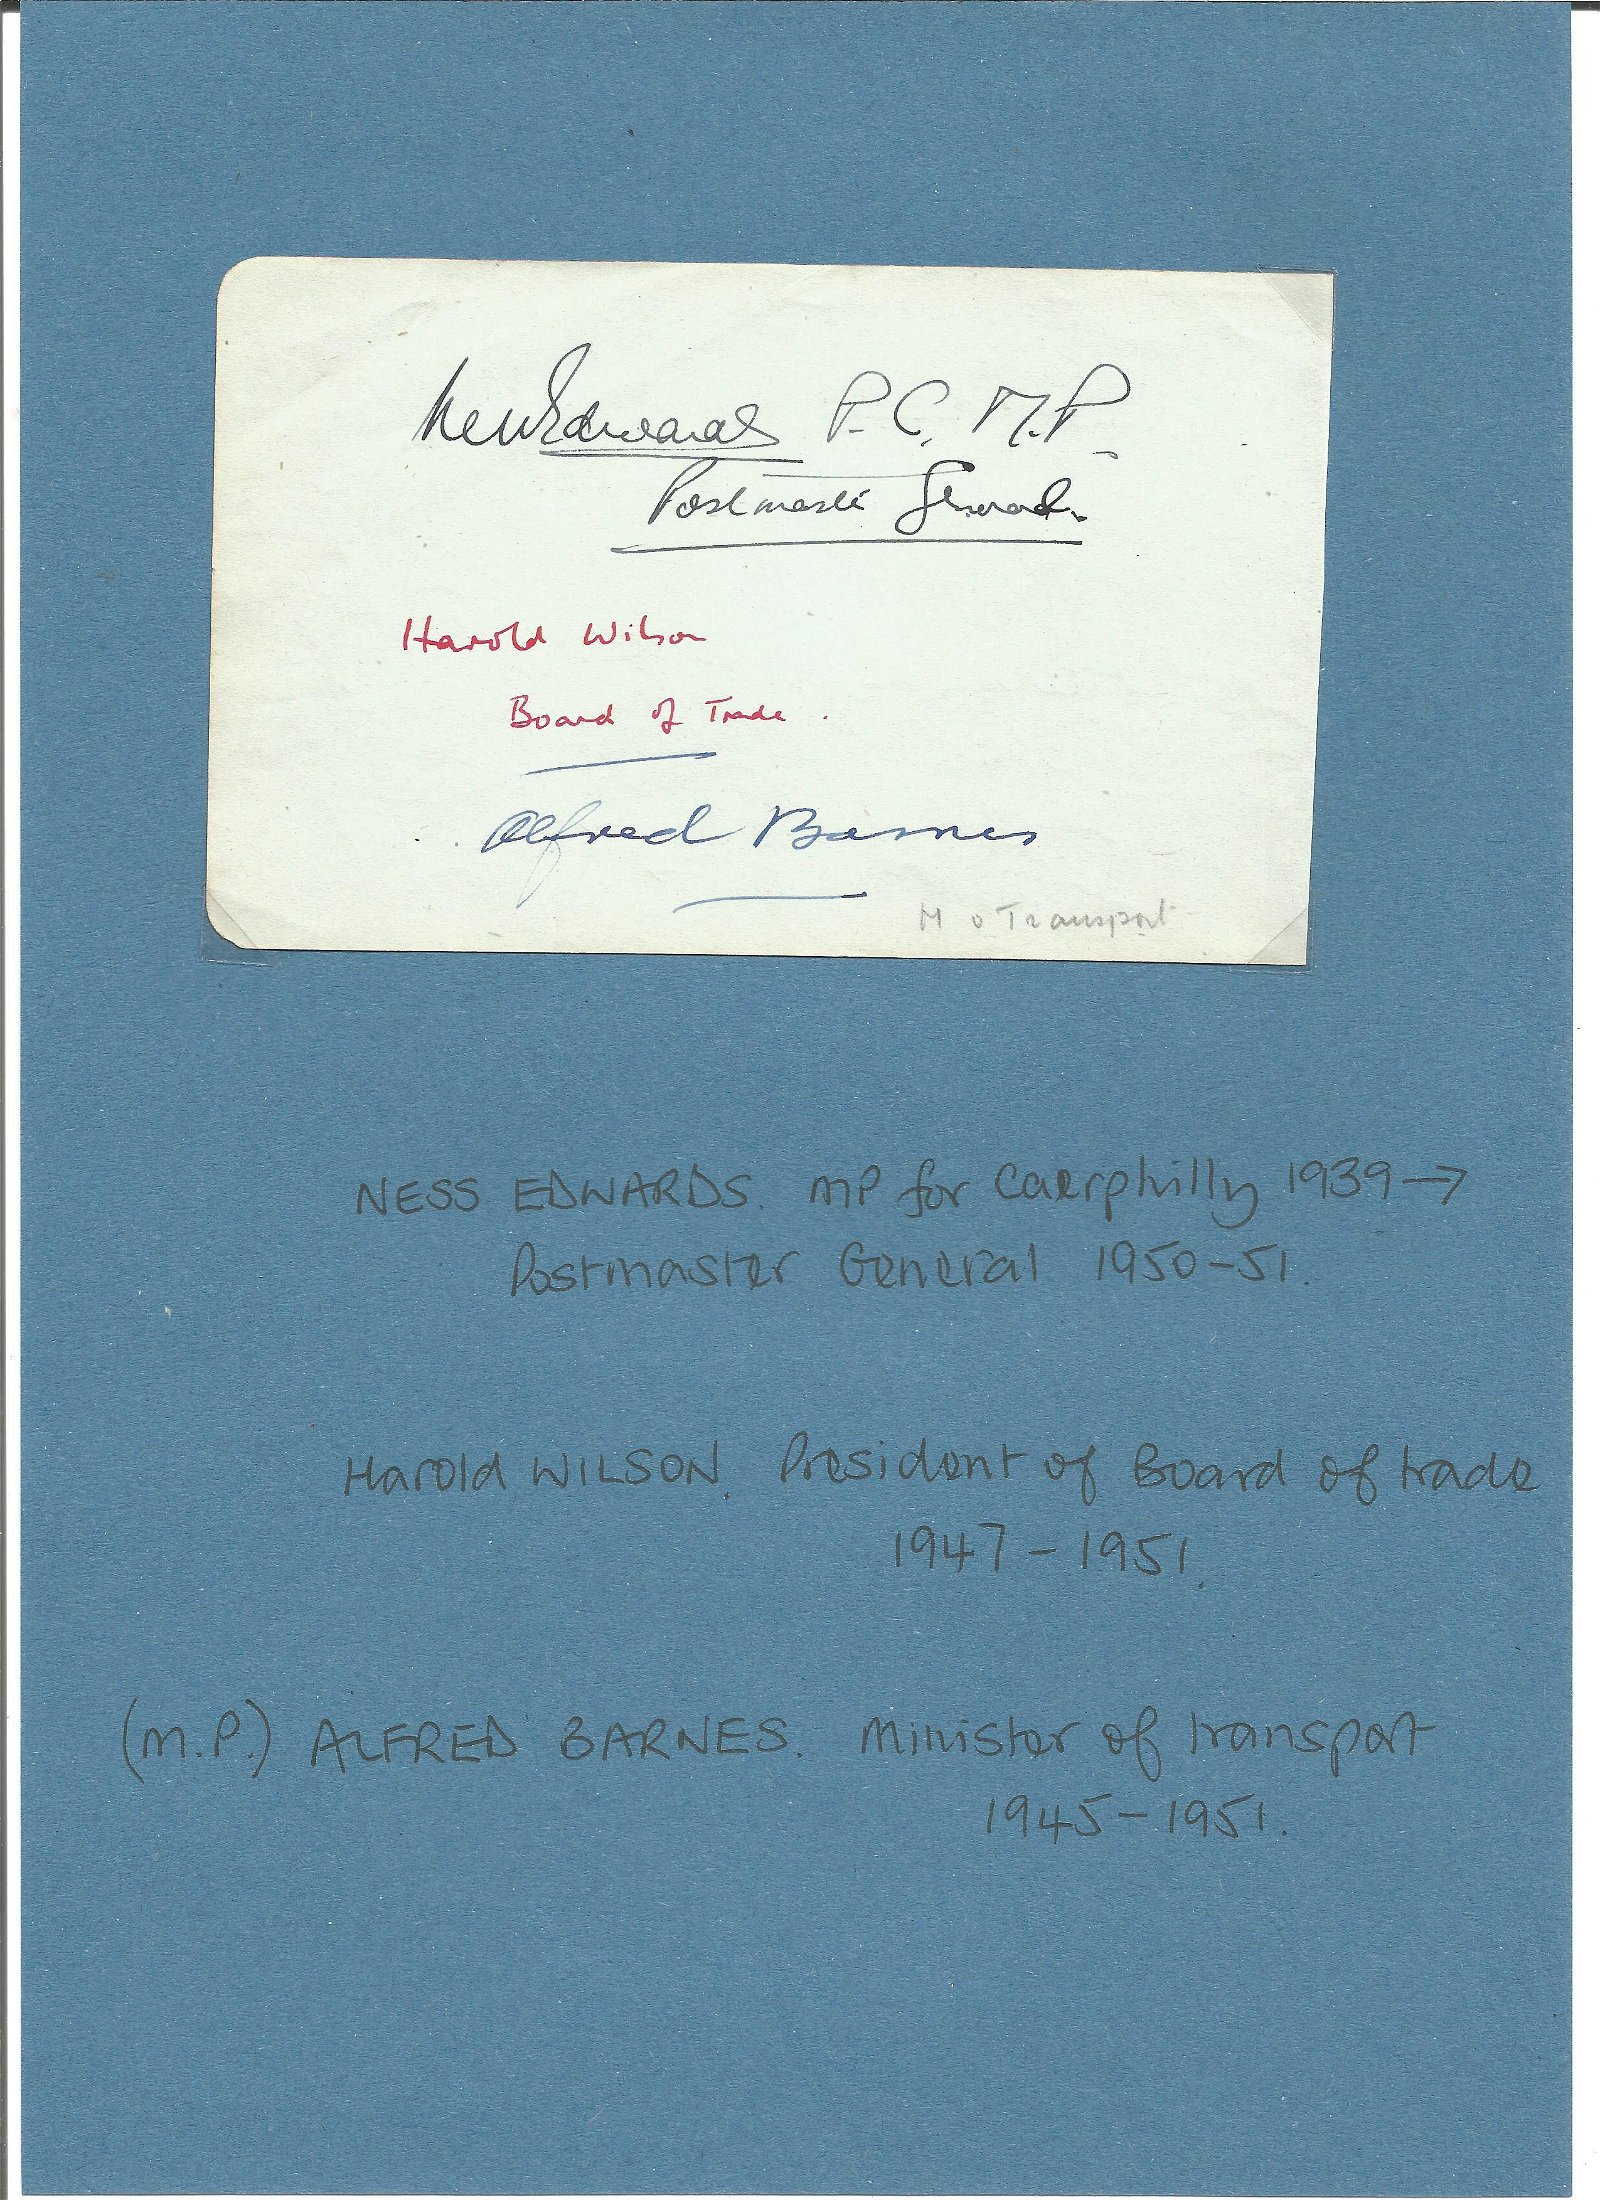 Harold Wilson signed album page. Also signed by Ness